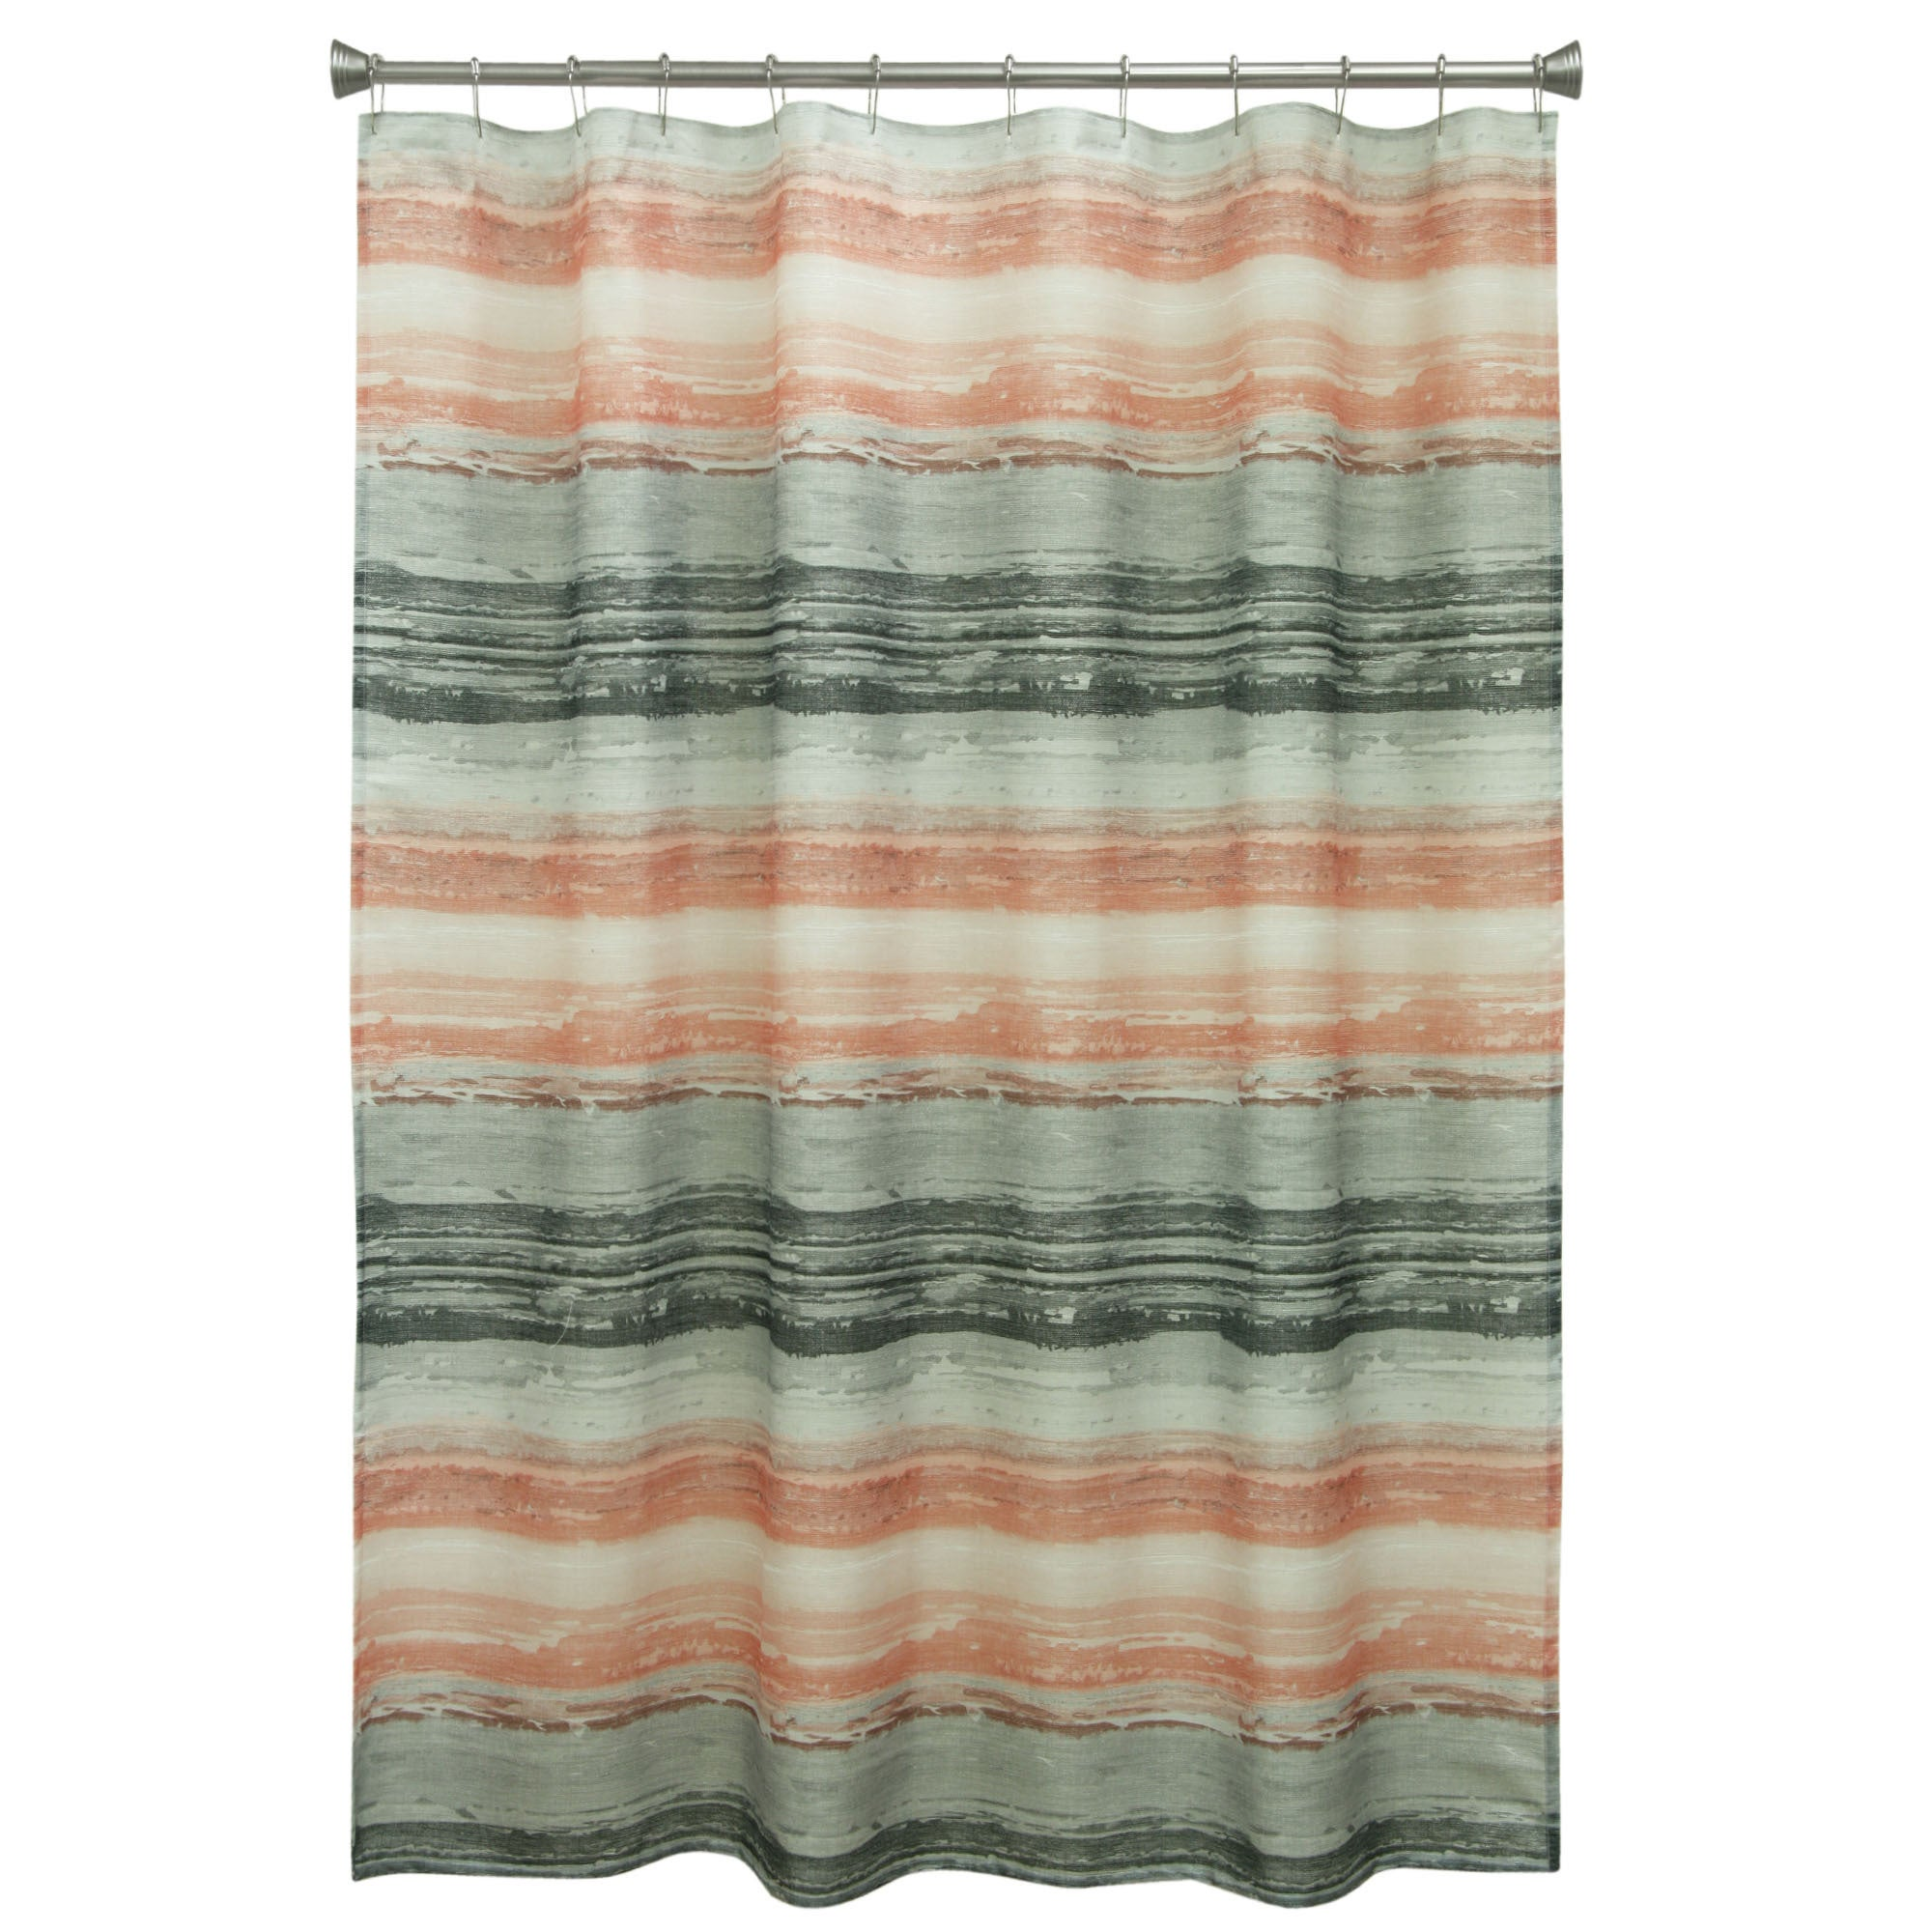 Portico Coral Fabric Shower Curtain - Free Shipping On Orders Over ...